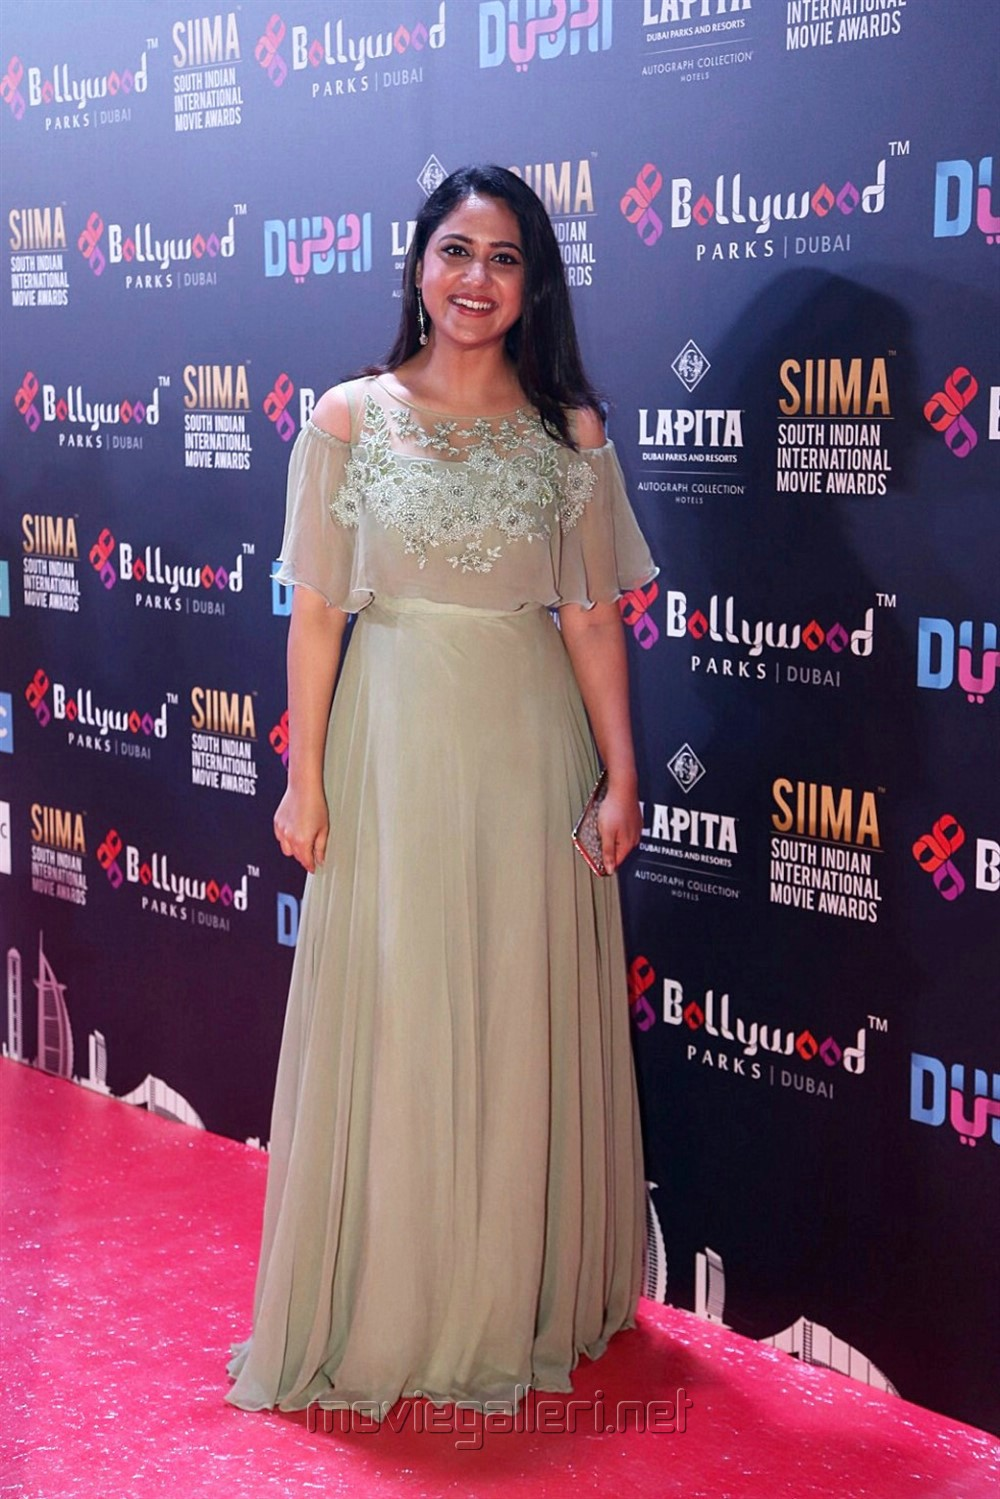 Actress Mia George Latest Pictures @ SIIMA Awards 2018 Red Carpet (Day 1)